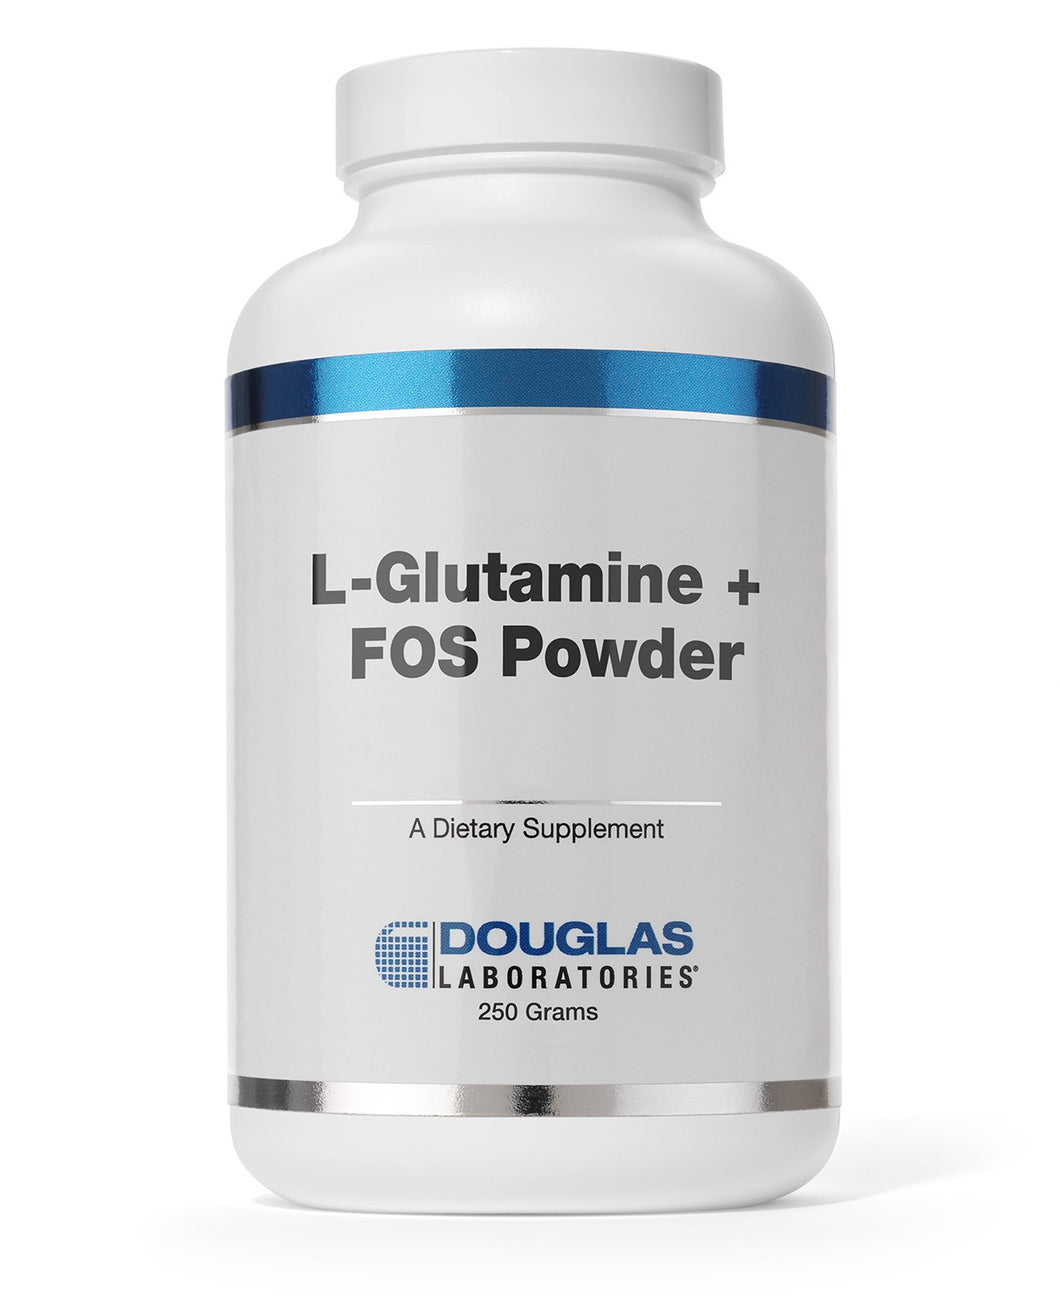 L-GLUTAMINE + FOS POWDER 250 Grams Douglas Laboratories